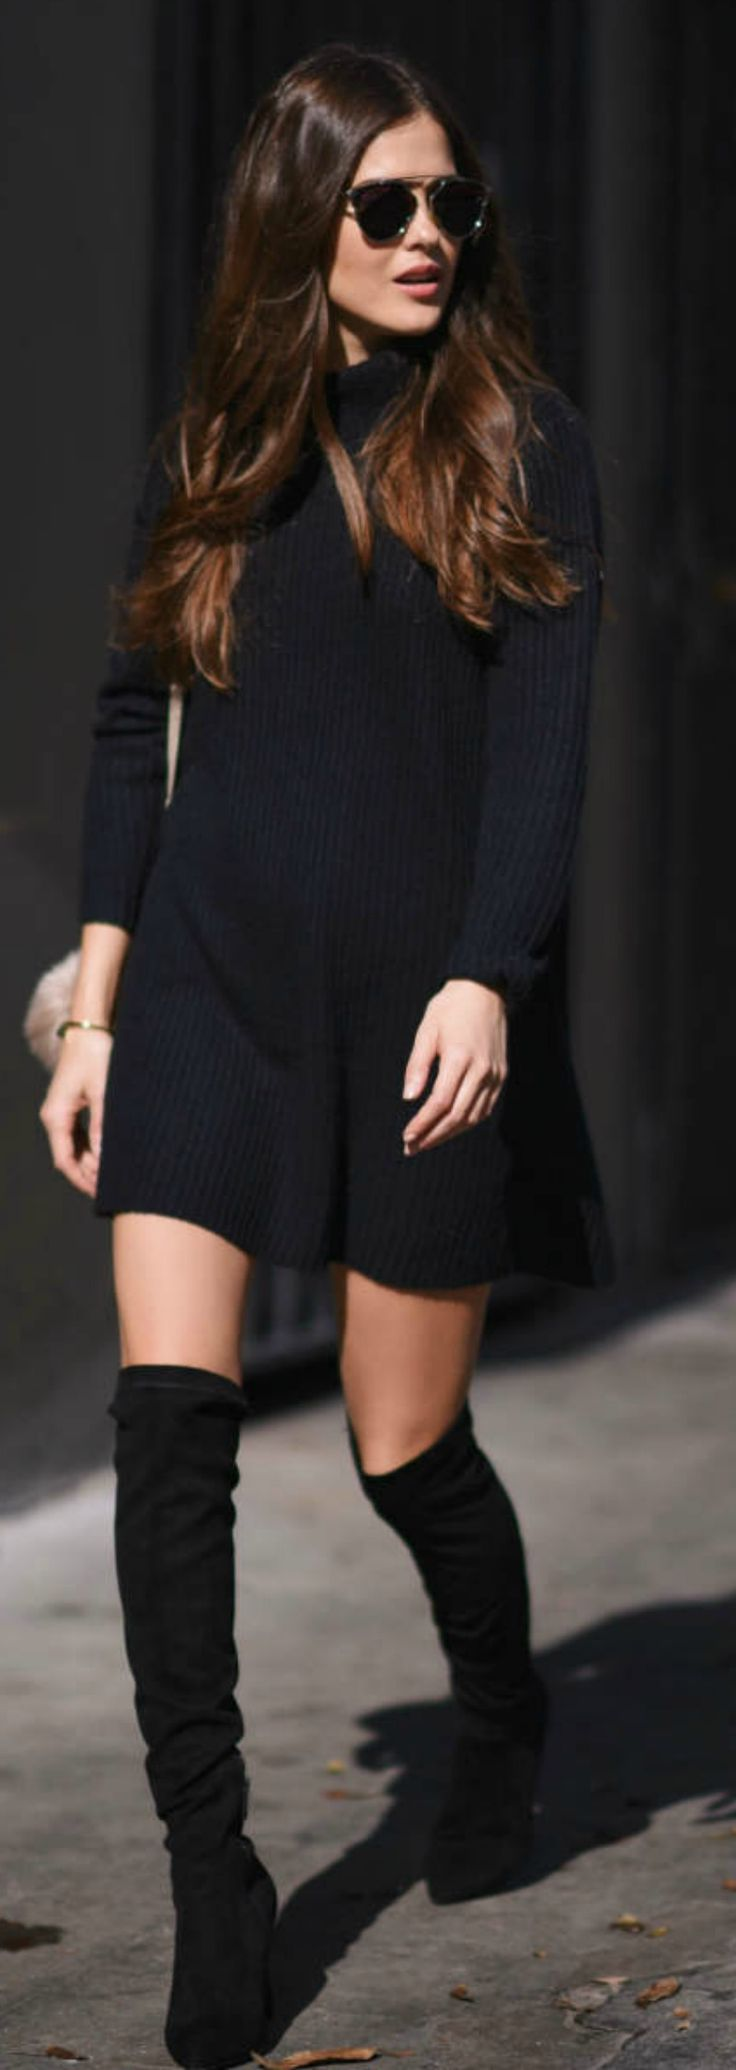 Paola Alberdi wears thigh high boots with a minimalistic black sweater dress, creating a casual, elegant style which is perfect for any occasion!  Dress: Glamorous, Boots: Joie, Handbag: Chloe Faye